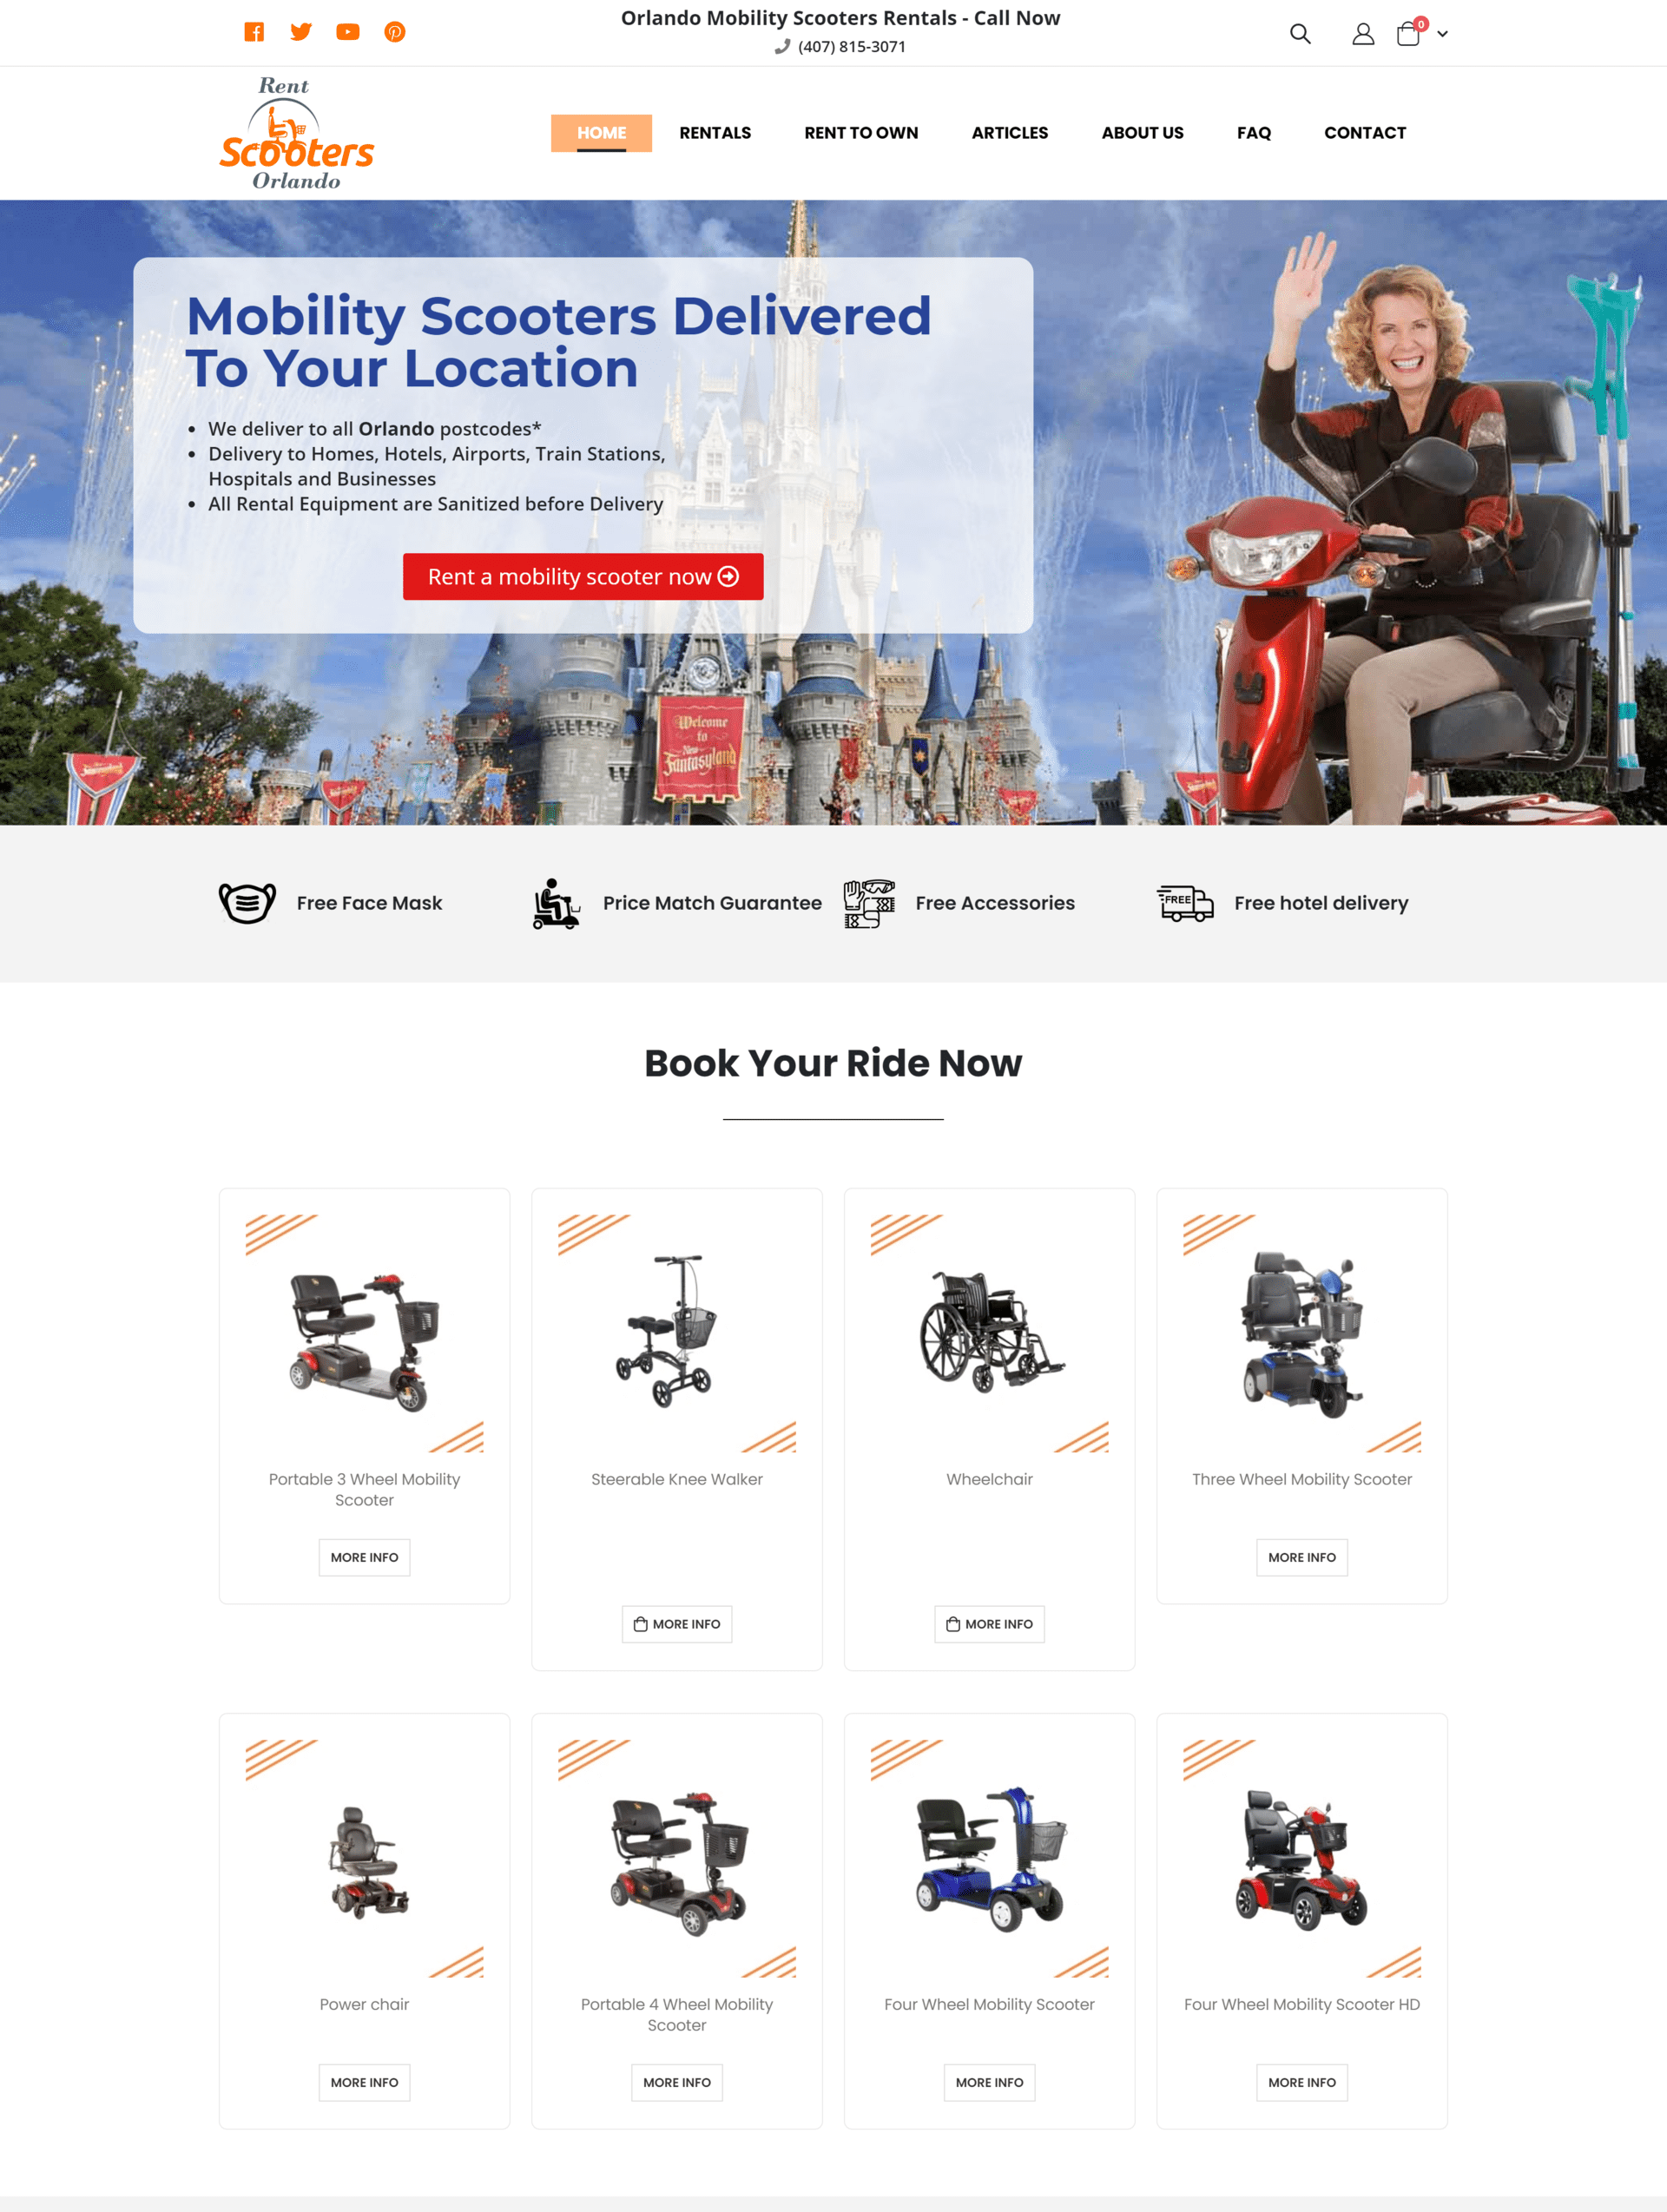 Rent Orlando Scooters